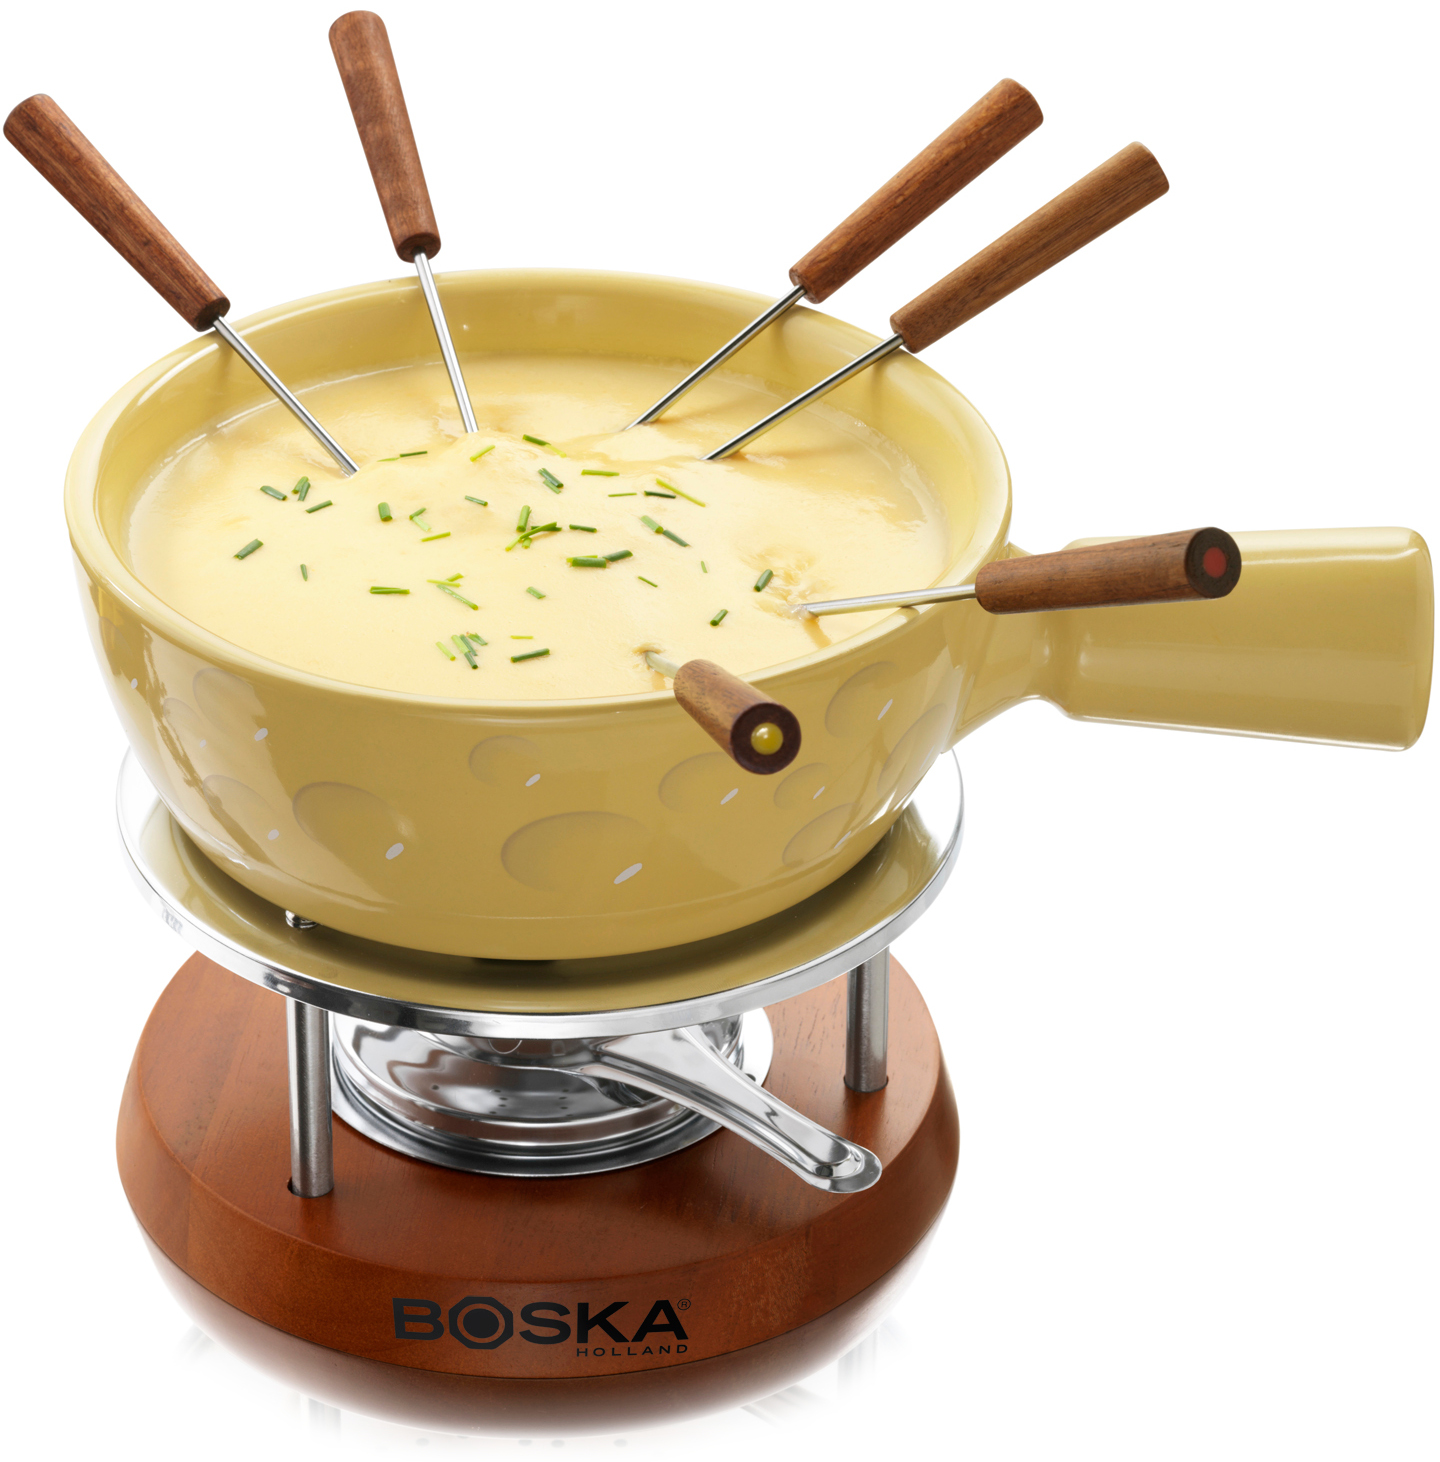 Boska Wood and Stainless Steel Fondue Set With Yellow Pot